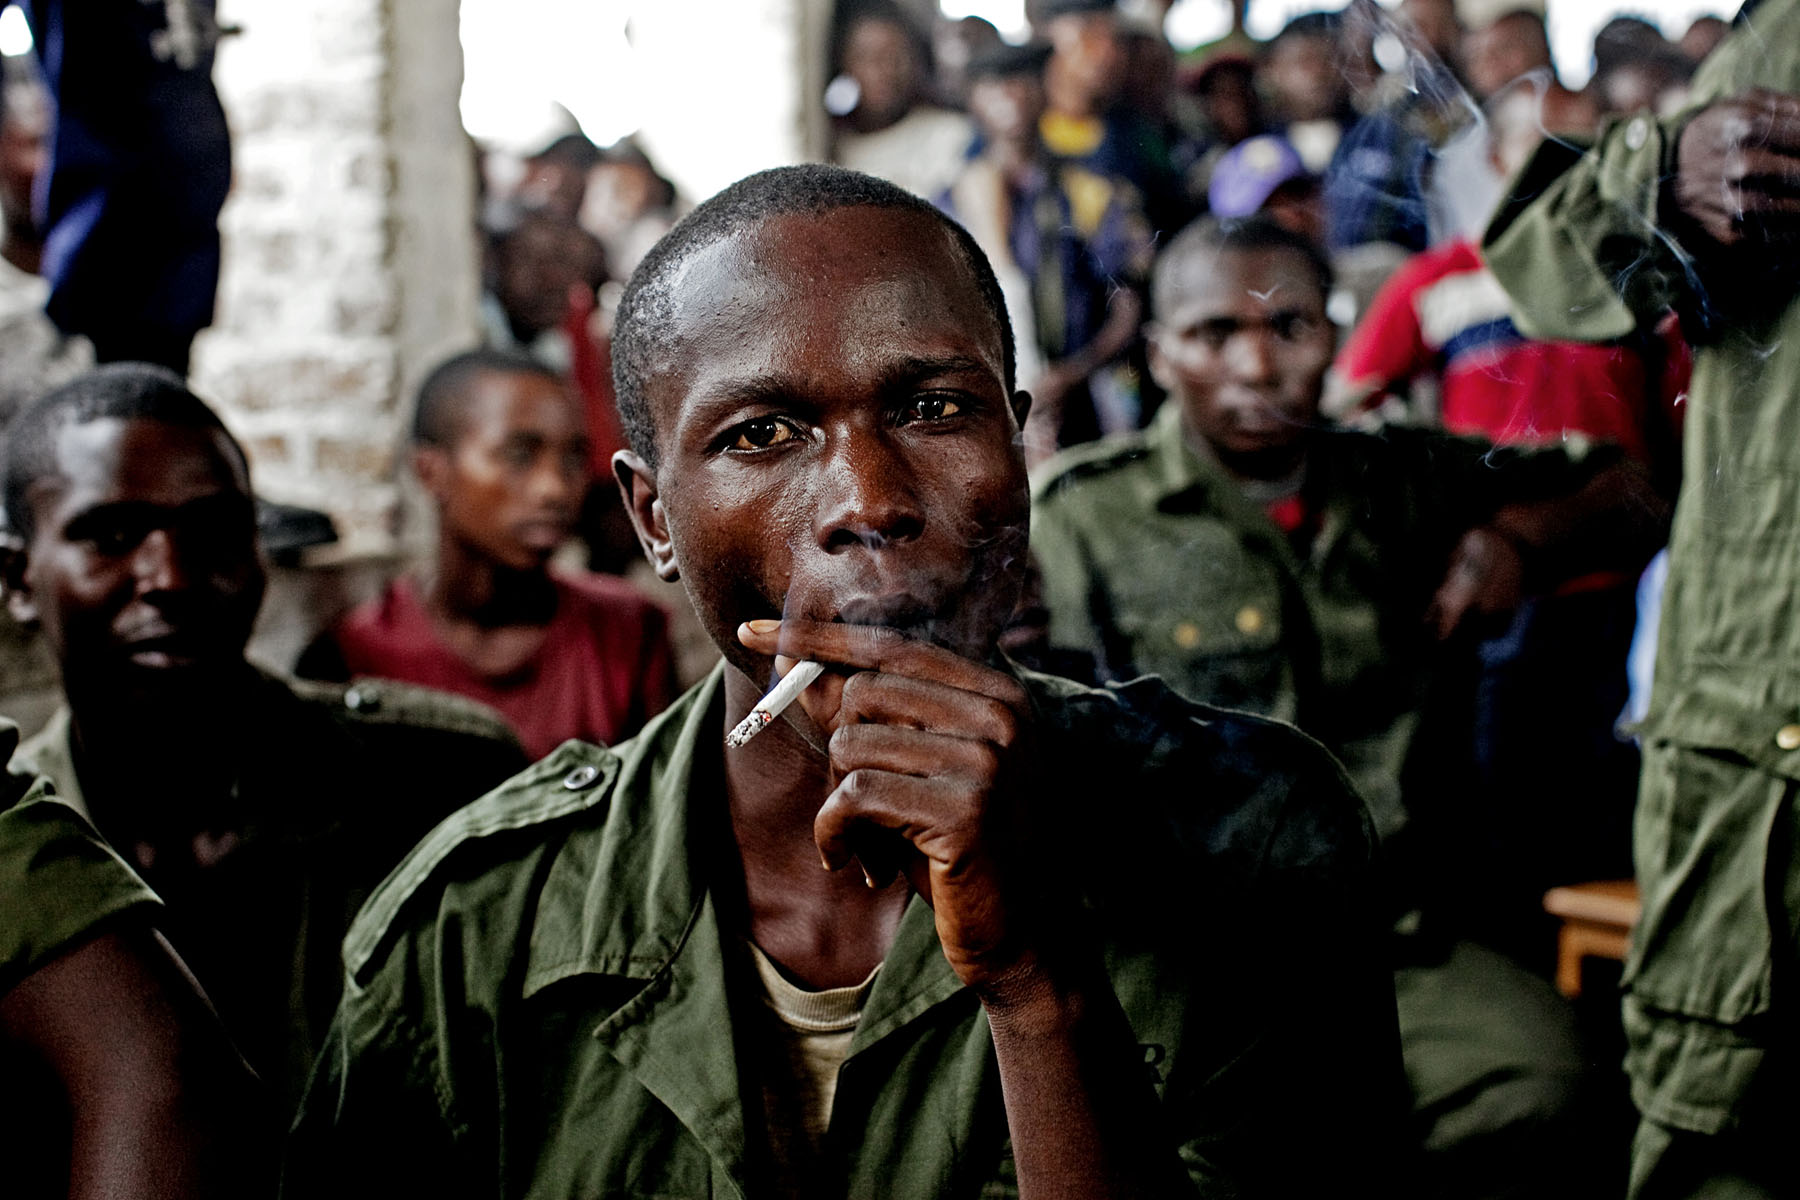 Sido Bizinungu, a close associate of Lt. Col Kebibi, smokes a cigarette during a break in sessions. Of all the soldiers, Sido struck me as the most deranged and dangerous. As other soldiers began to realize that their fate was grim, Sido remained defiantly indifferent. Early in the trial he made an attempt to smash my camera.